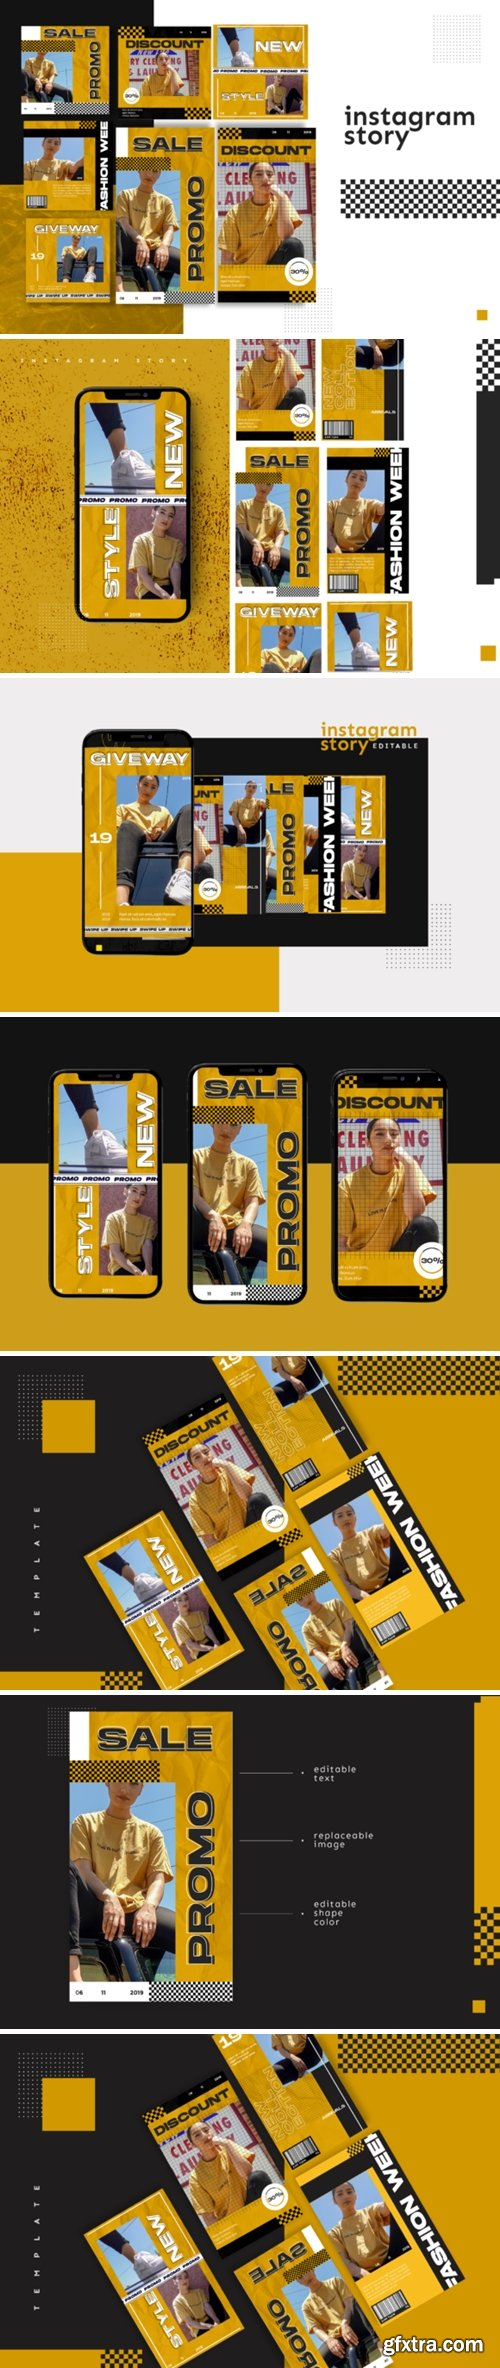 Instagram Story Template 2013272